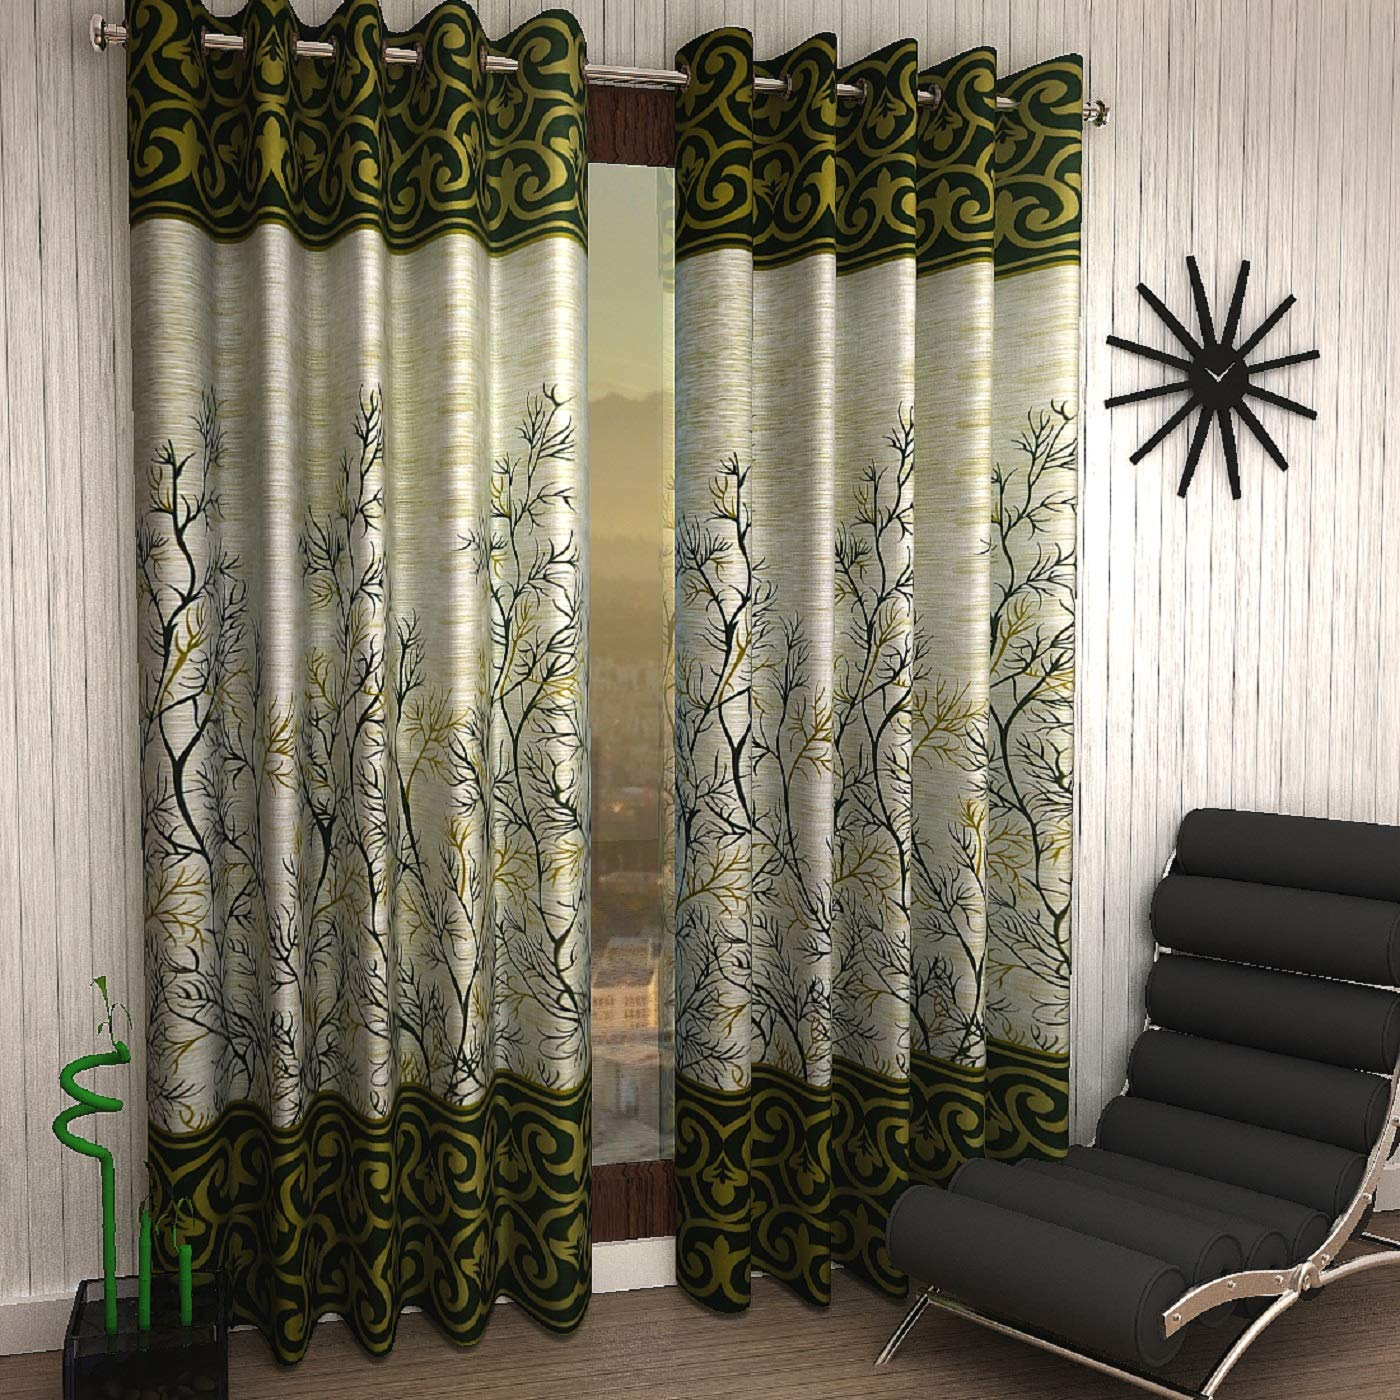 Home Sizzler 2 Piece Eyelet Polyester Door Curtain Set - 7ft, Green